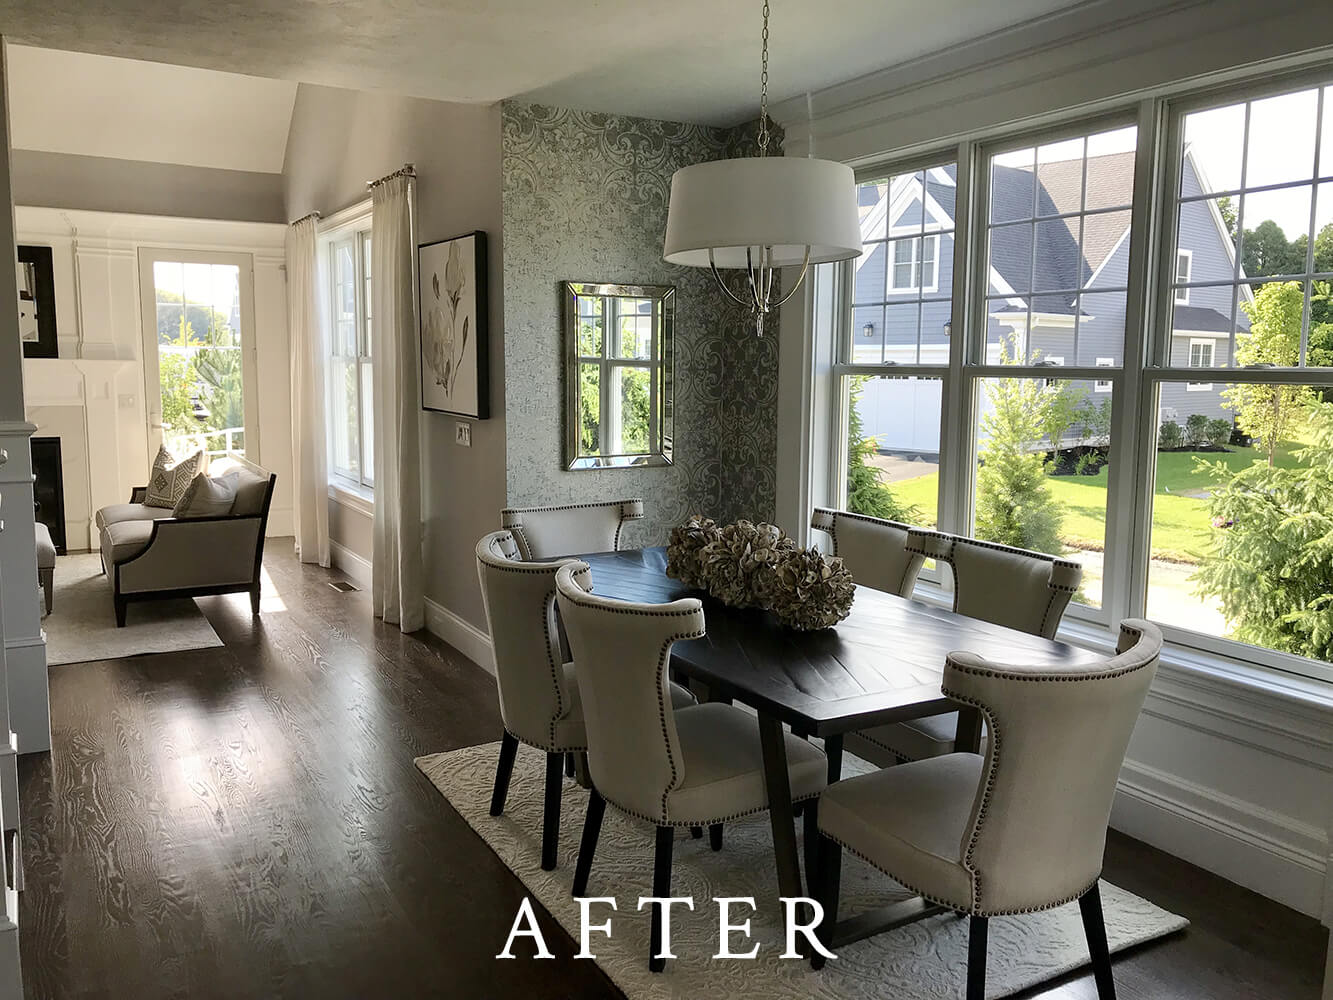 Model Home Staging - Dining Room - After